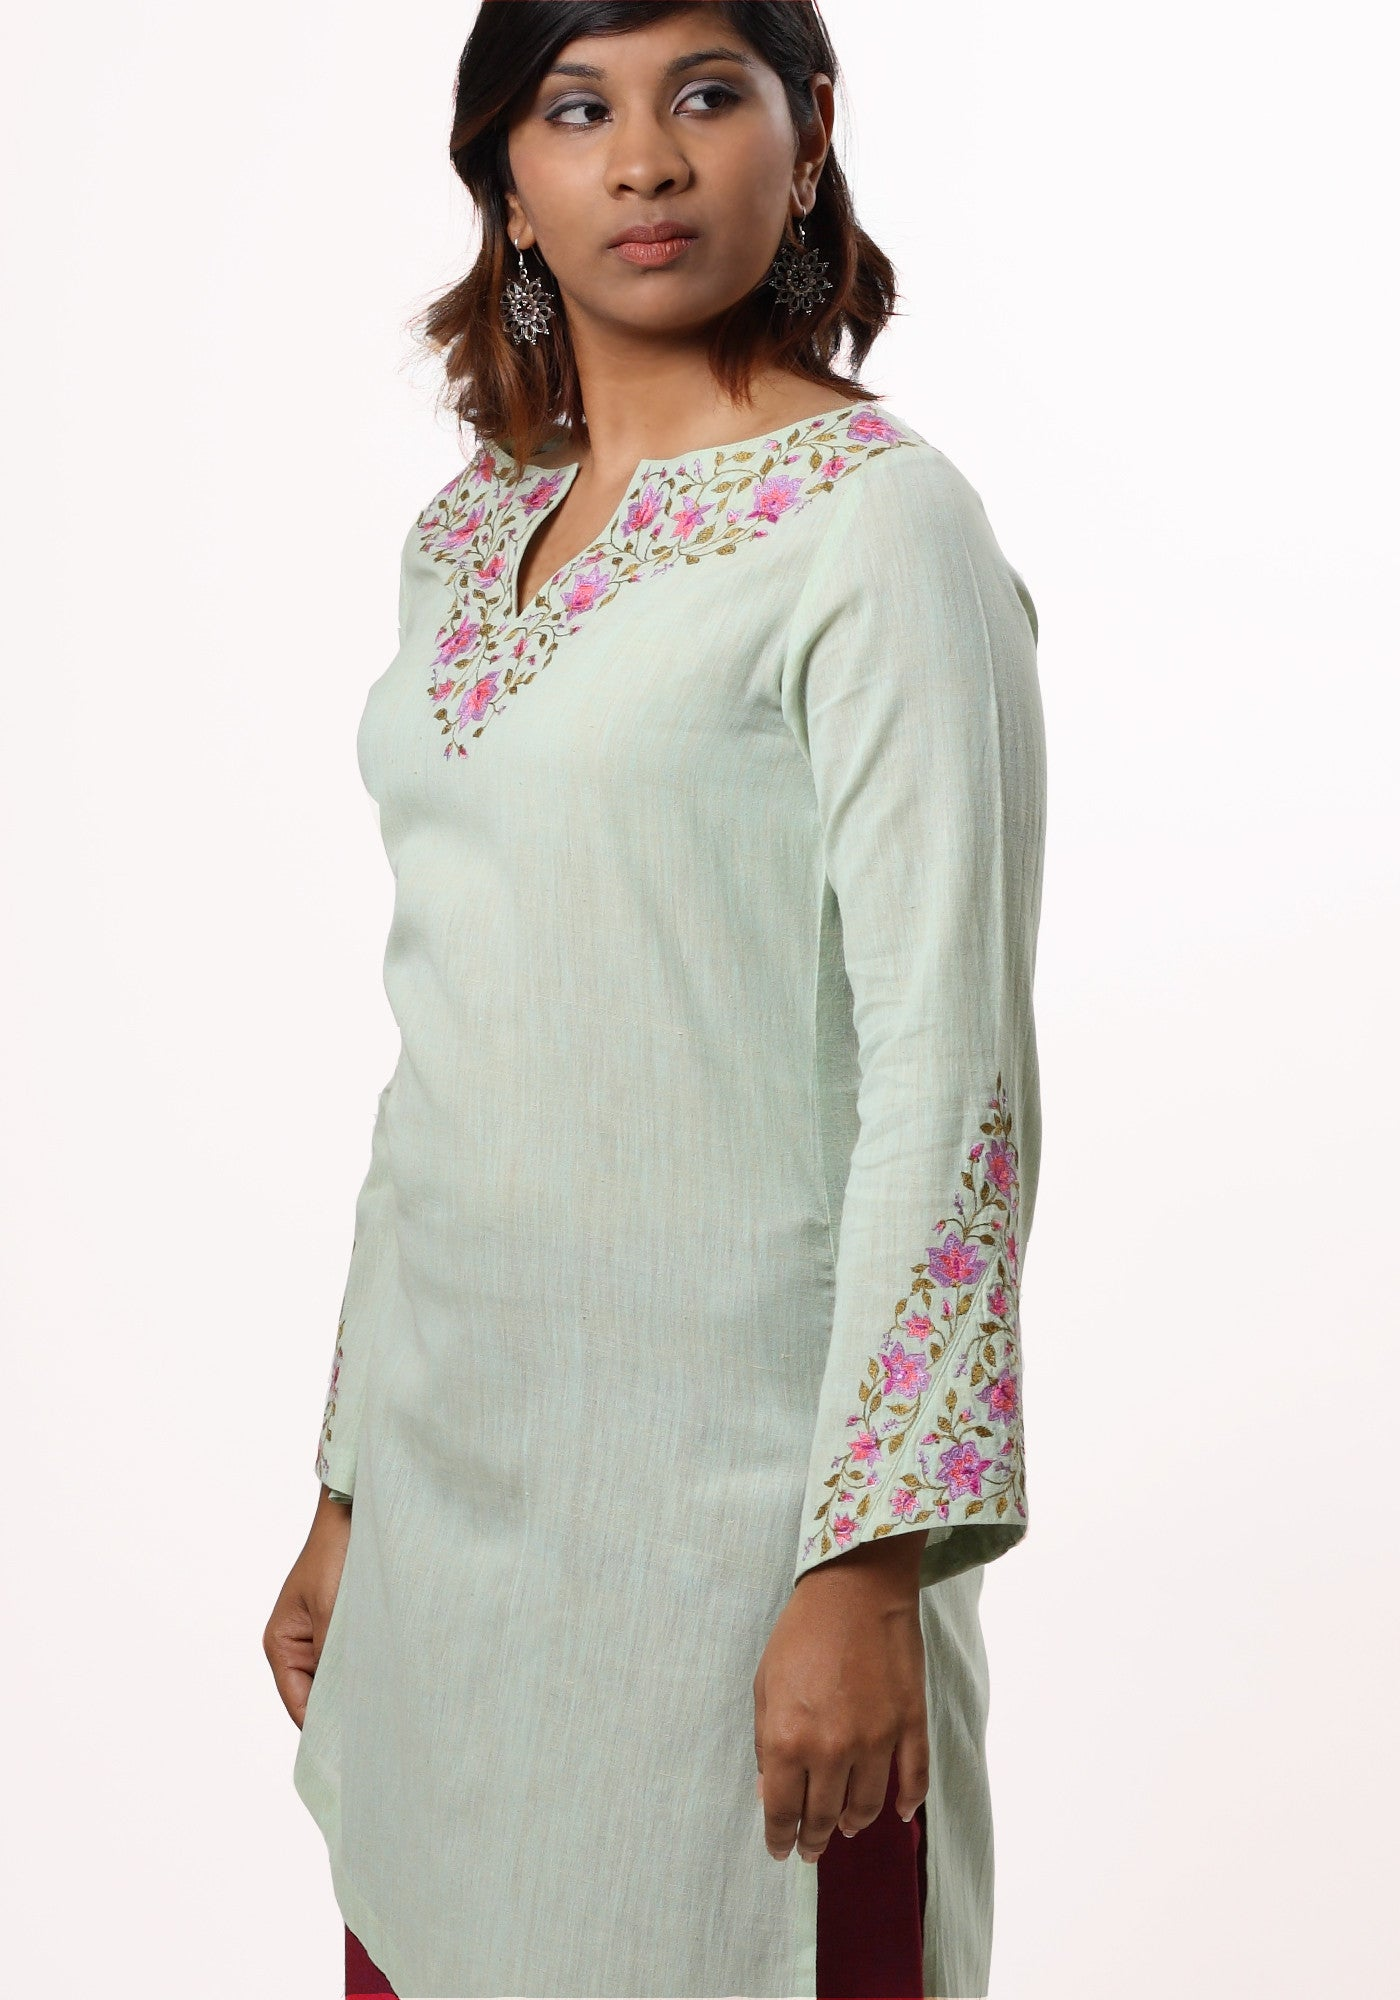 Ragini Embroidered Kurta in Green Cotton Khadi - MINC ecofashion